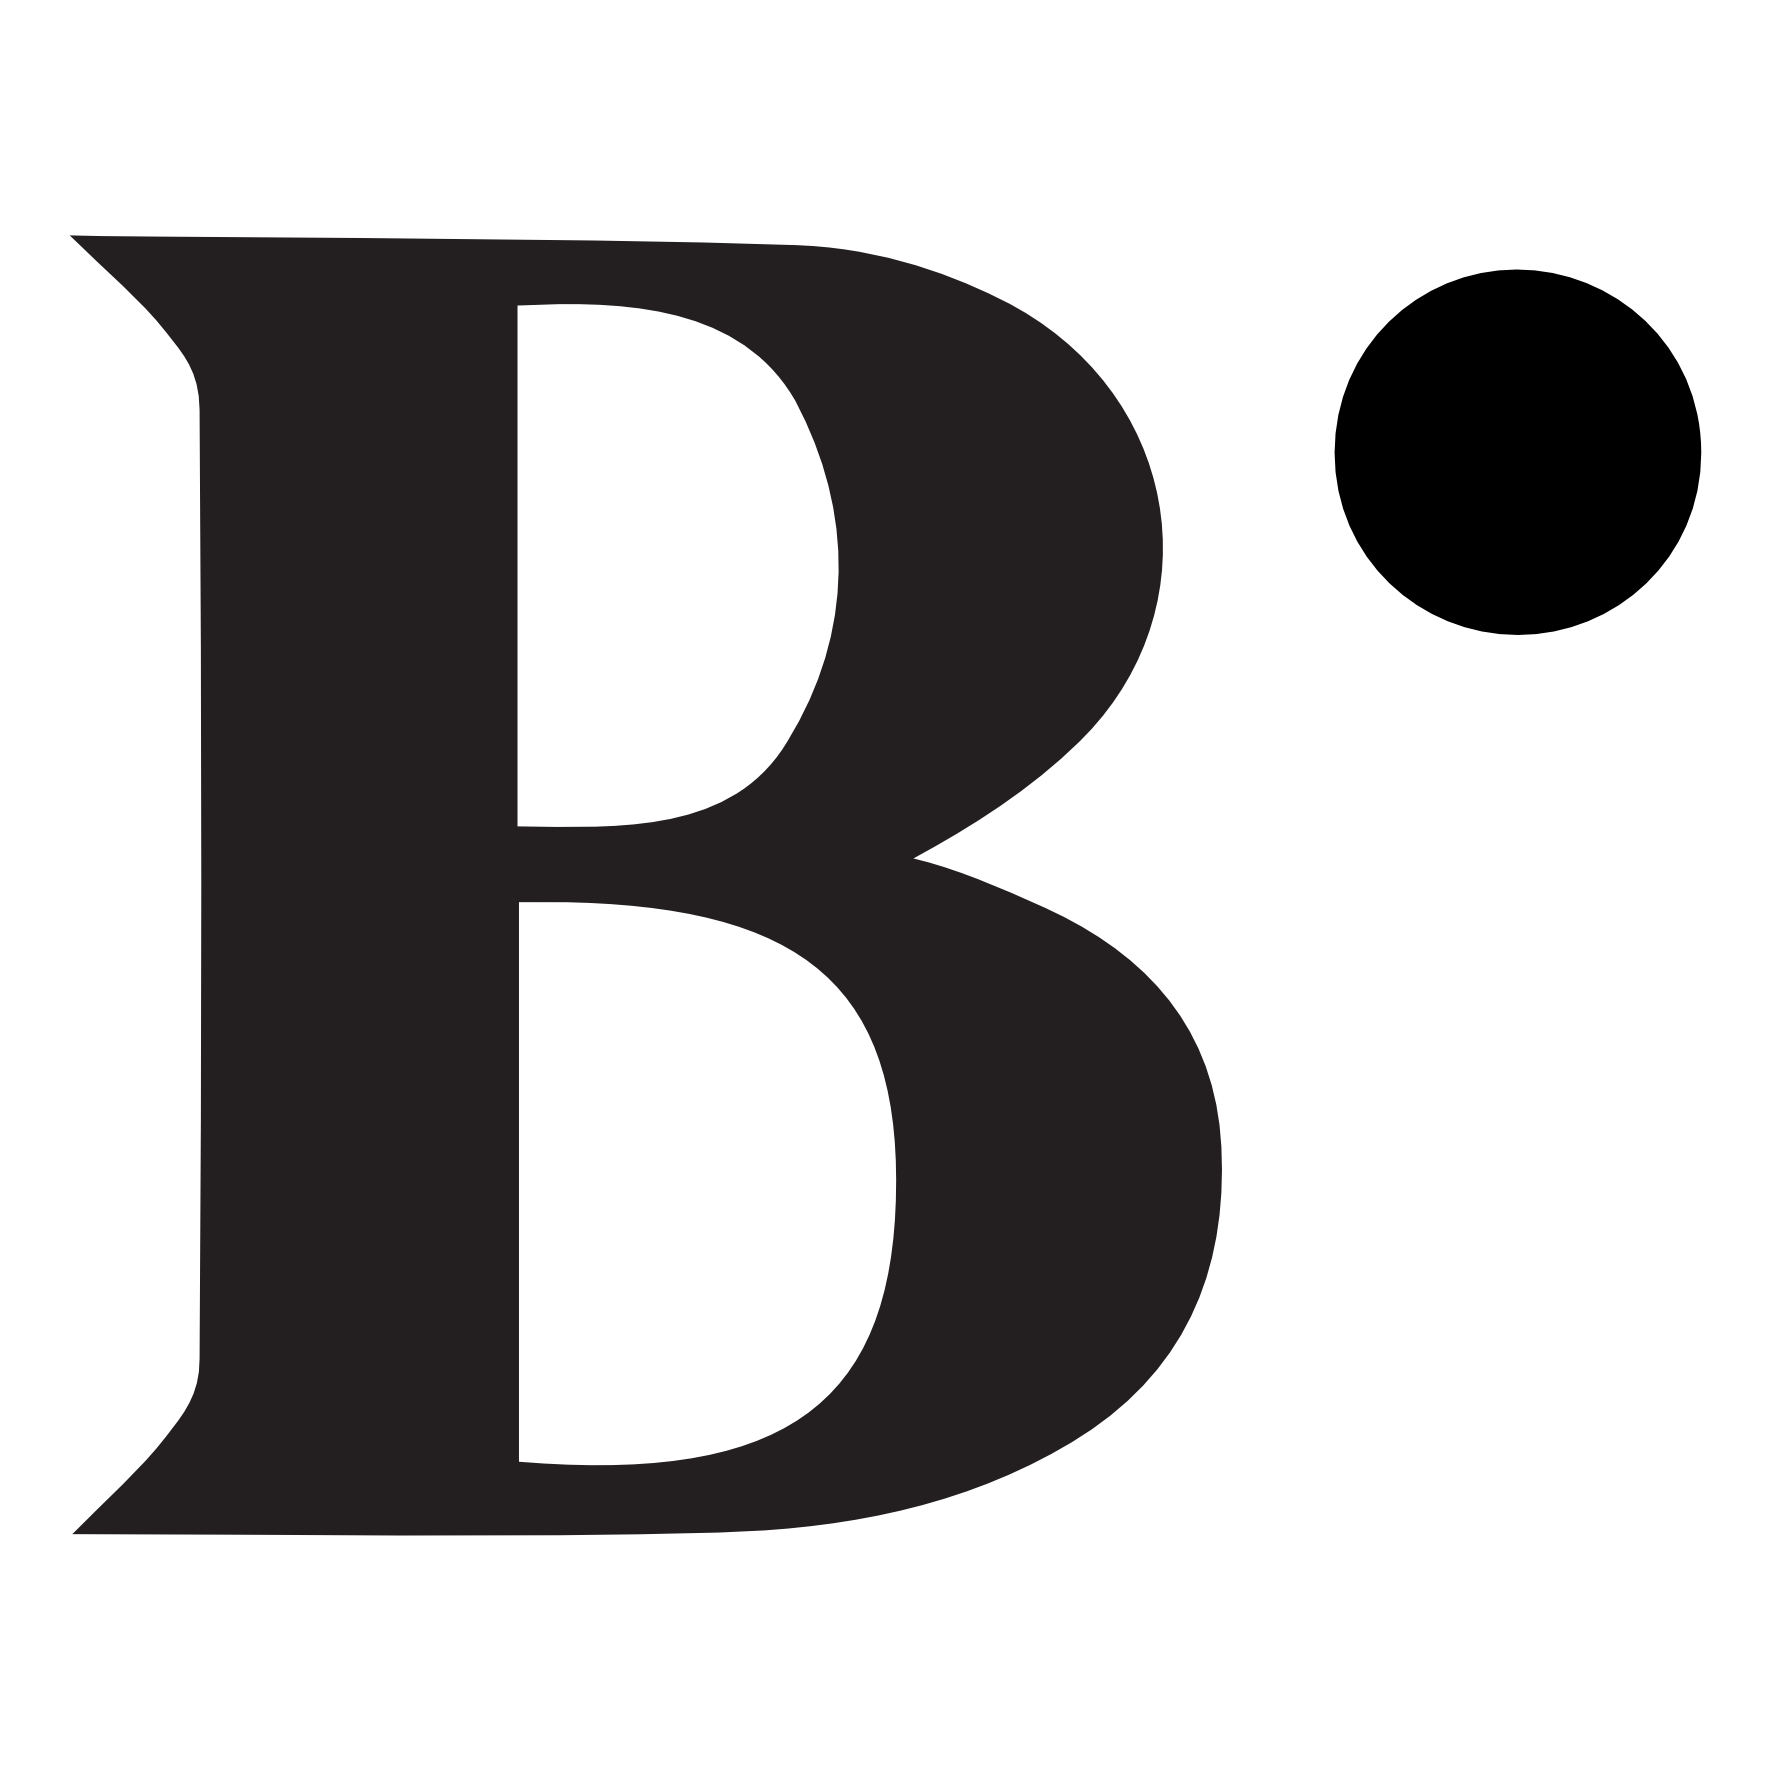 cover page B logo.png